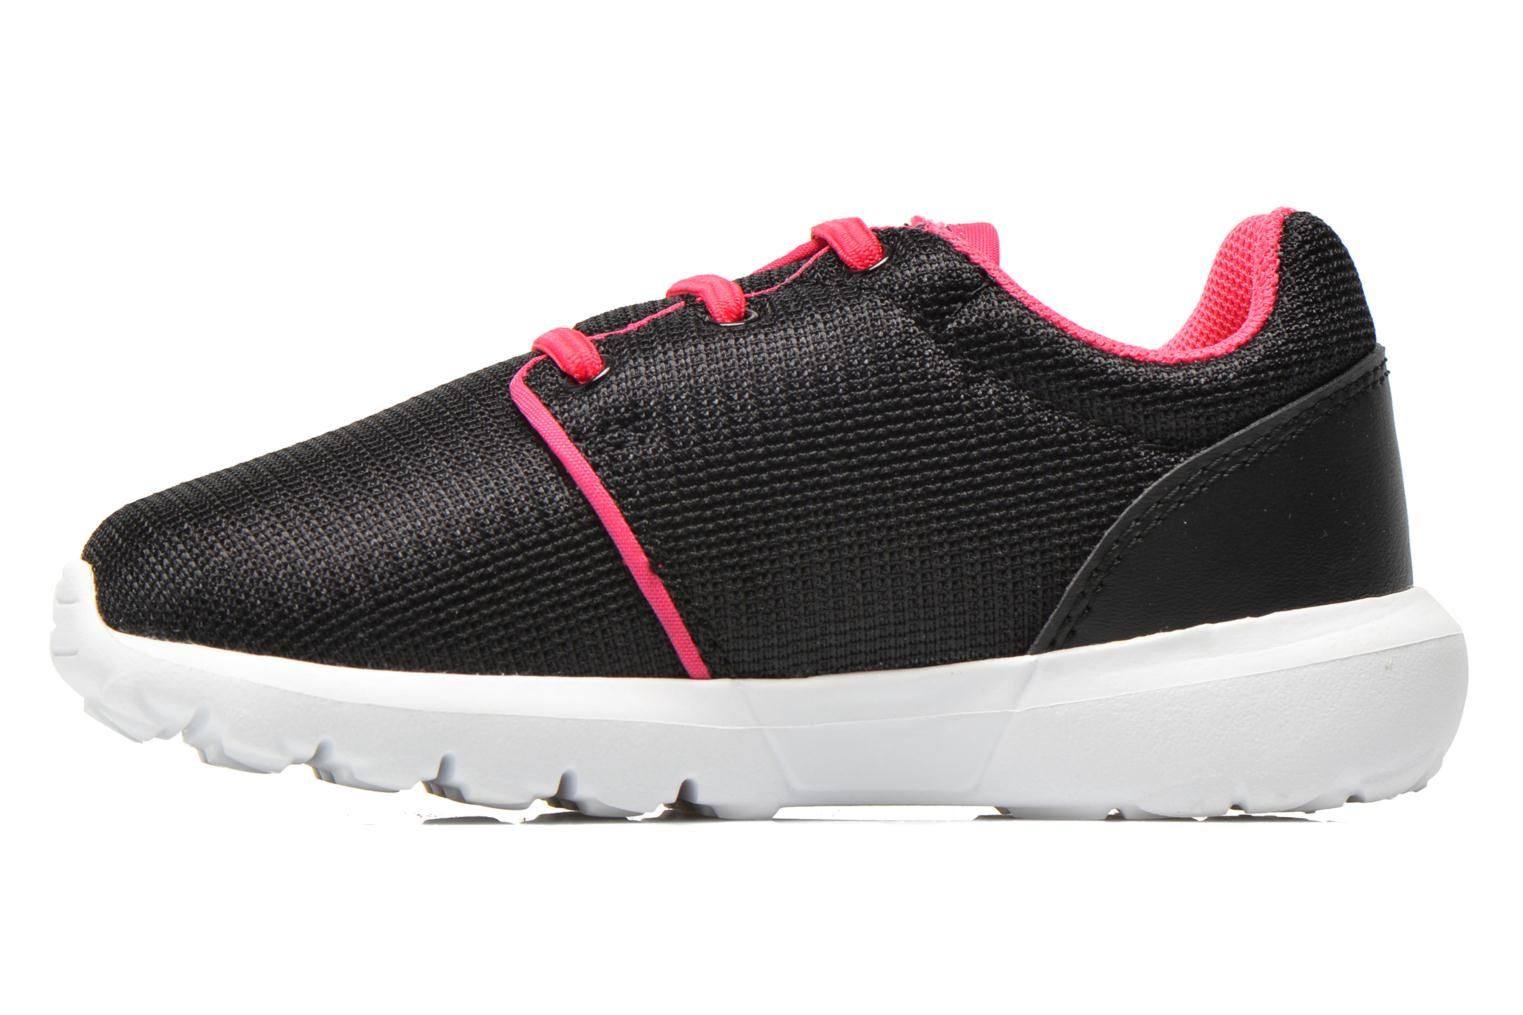 Dynacomf INF Mesh Black/Honeysuckle